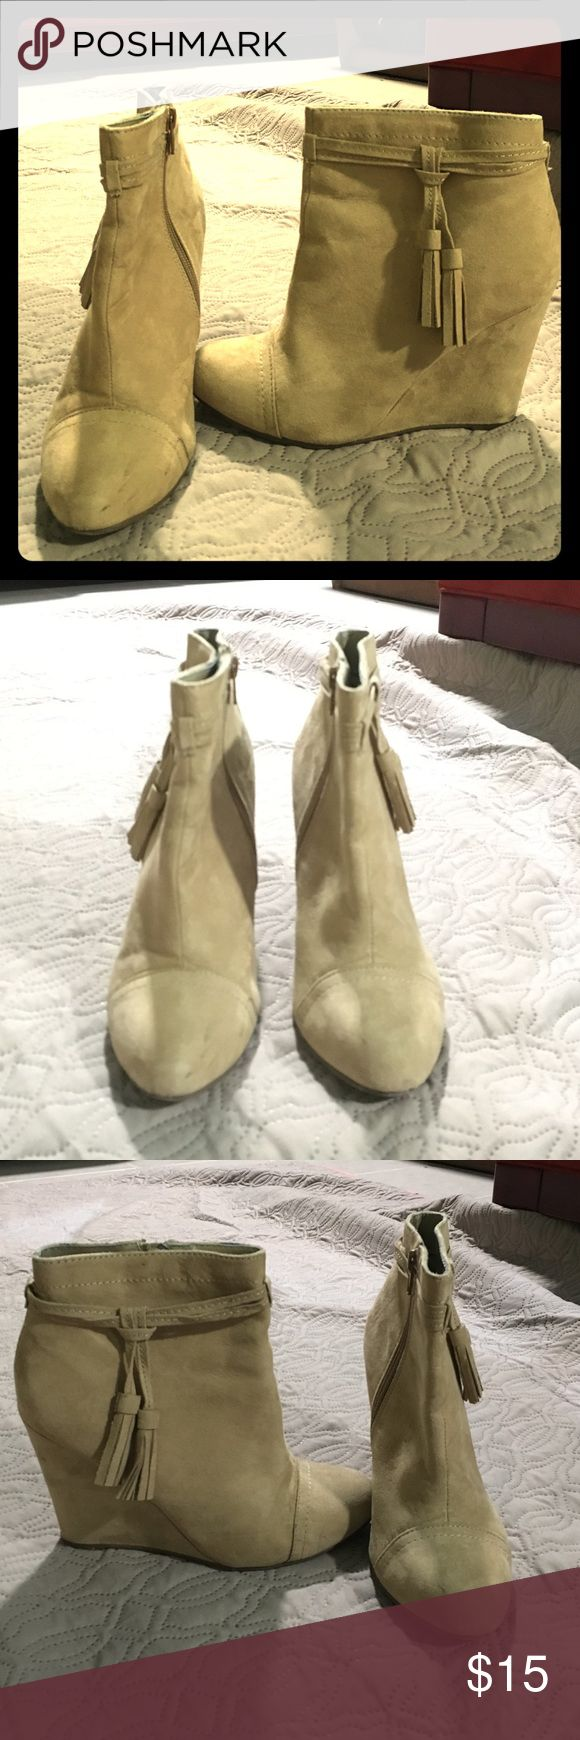 Tan/Beige Wedge Booties Super cute Tan/ Beige Wedge booties. Used but in good conditions. Forever 21 Shoes Ankle Boots & Booties